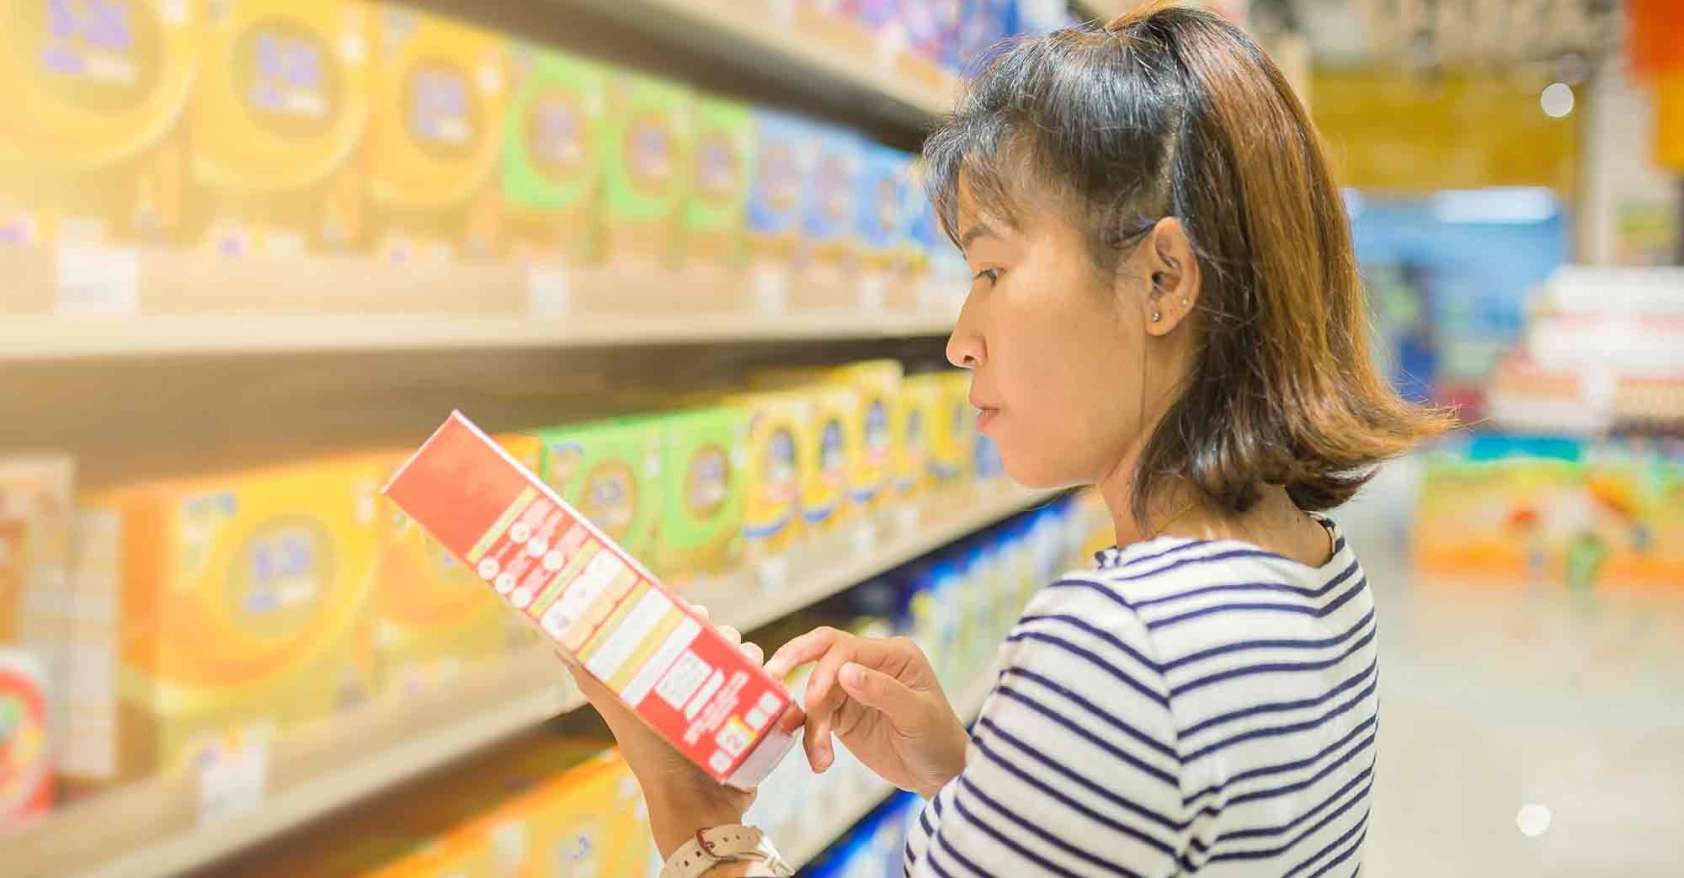 Asian Woman Reading Food label while standing grocery aisle. She managing control of what she eats